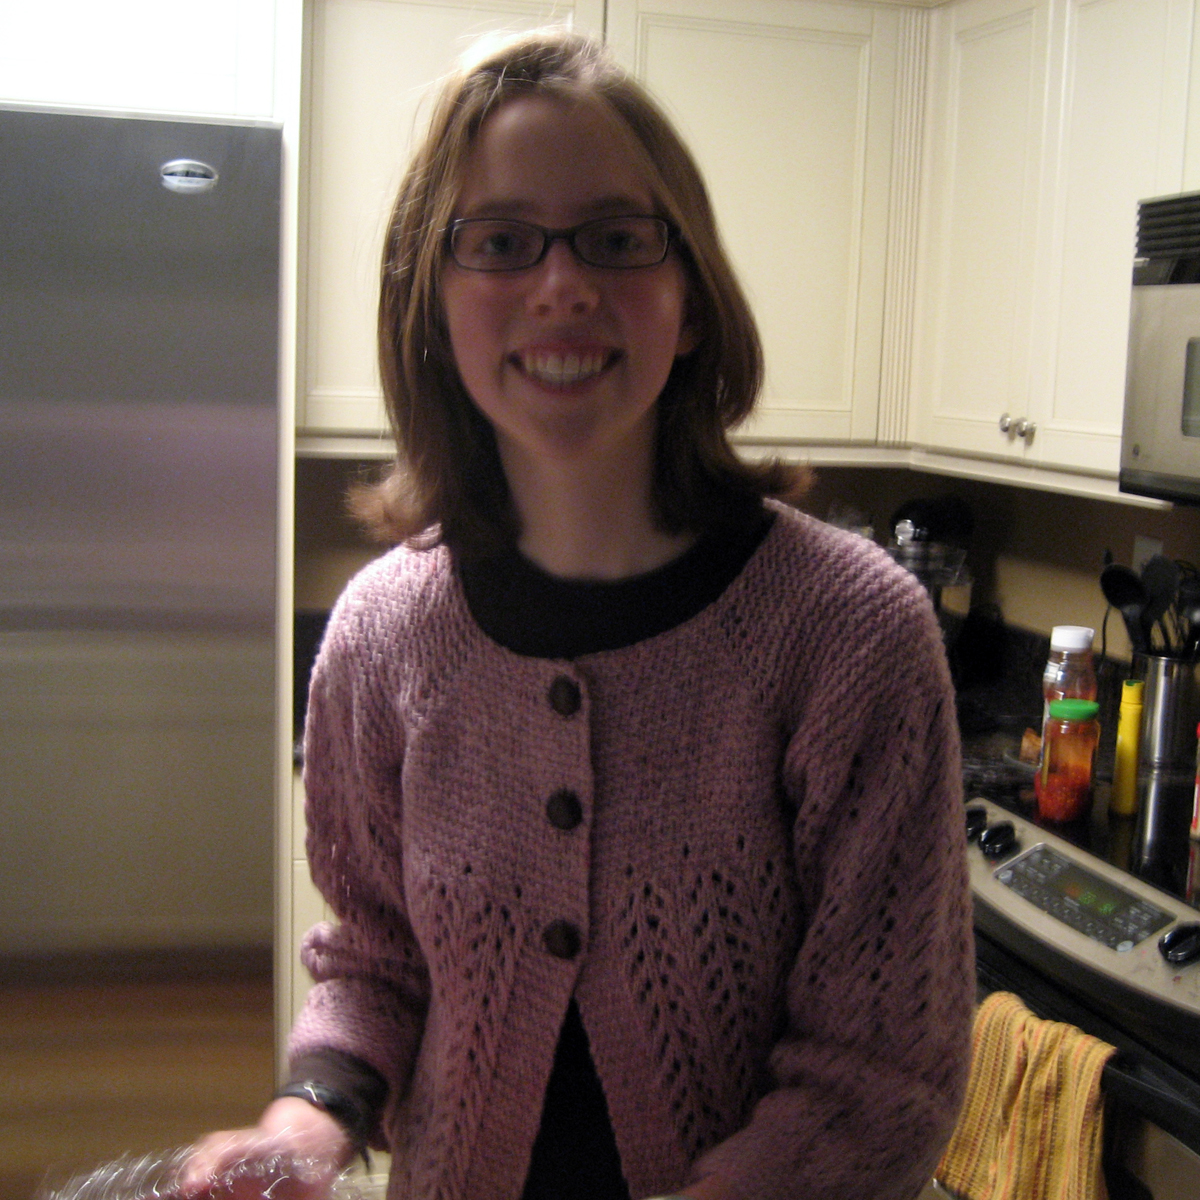 84/365 - sara's february lady sweater